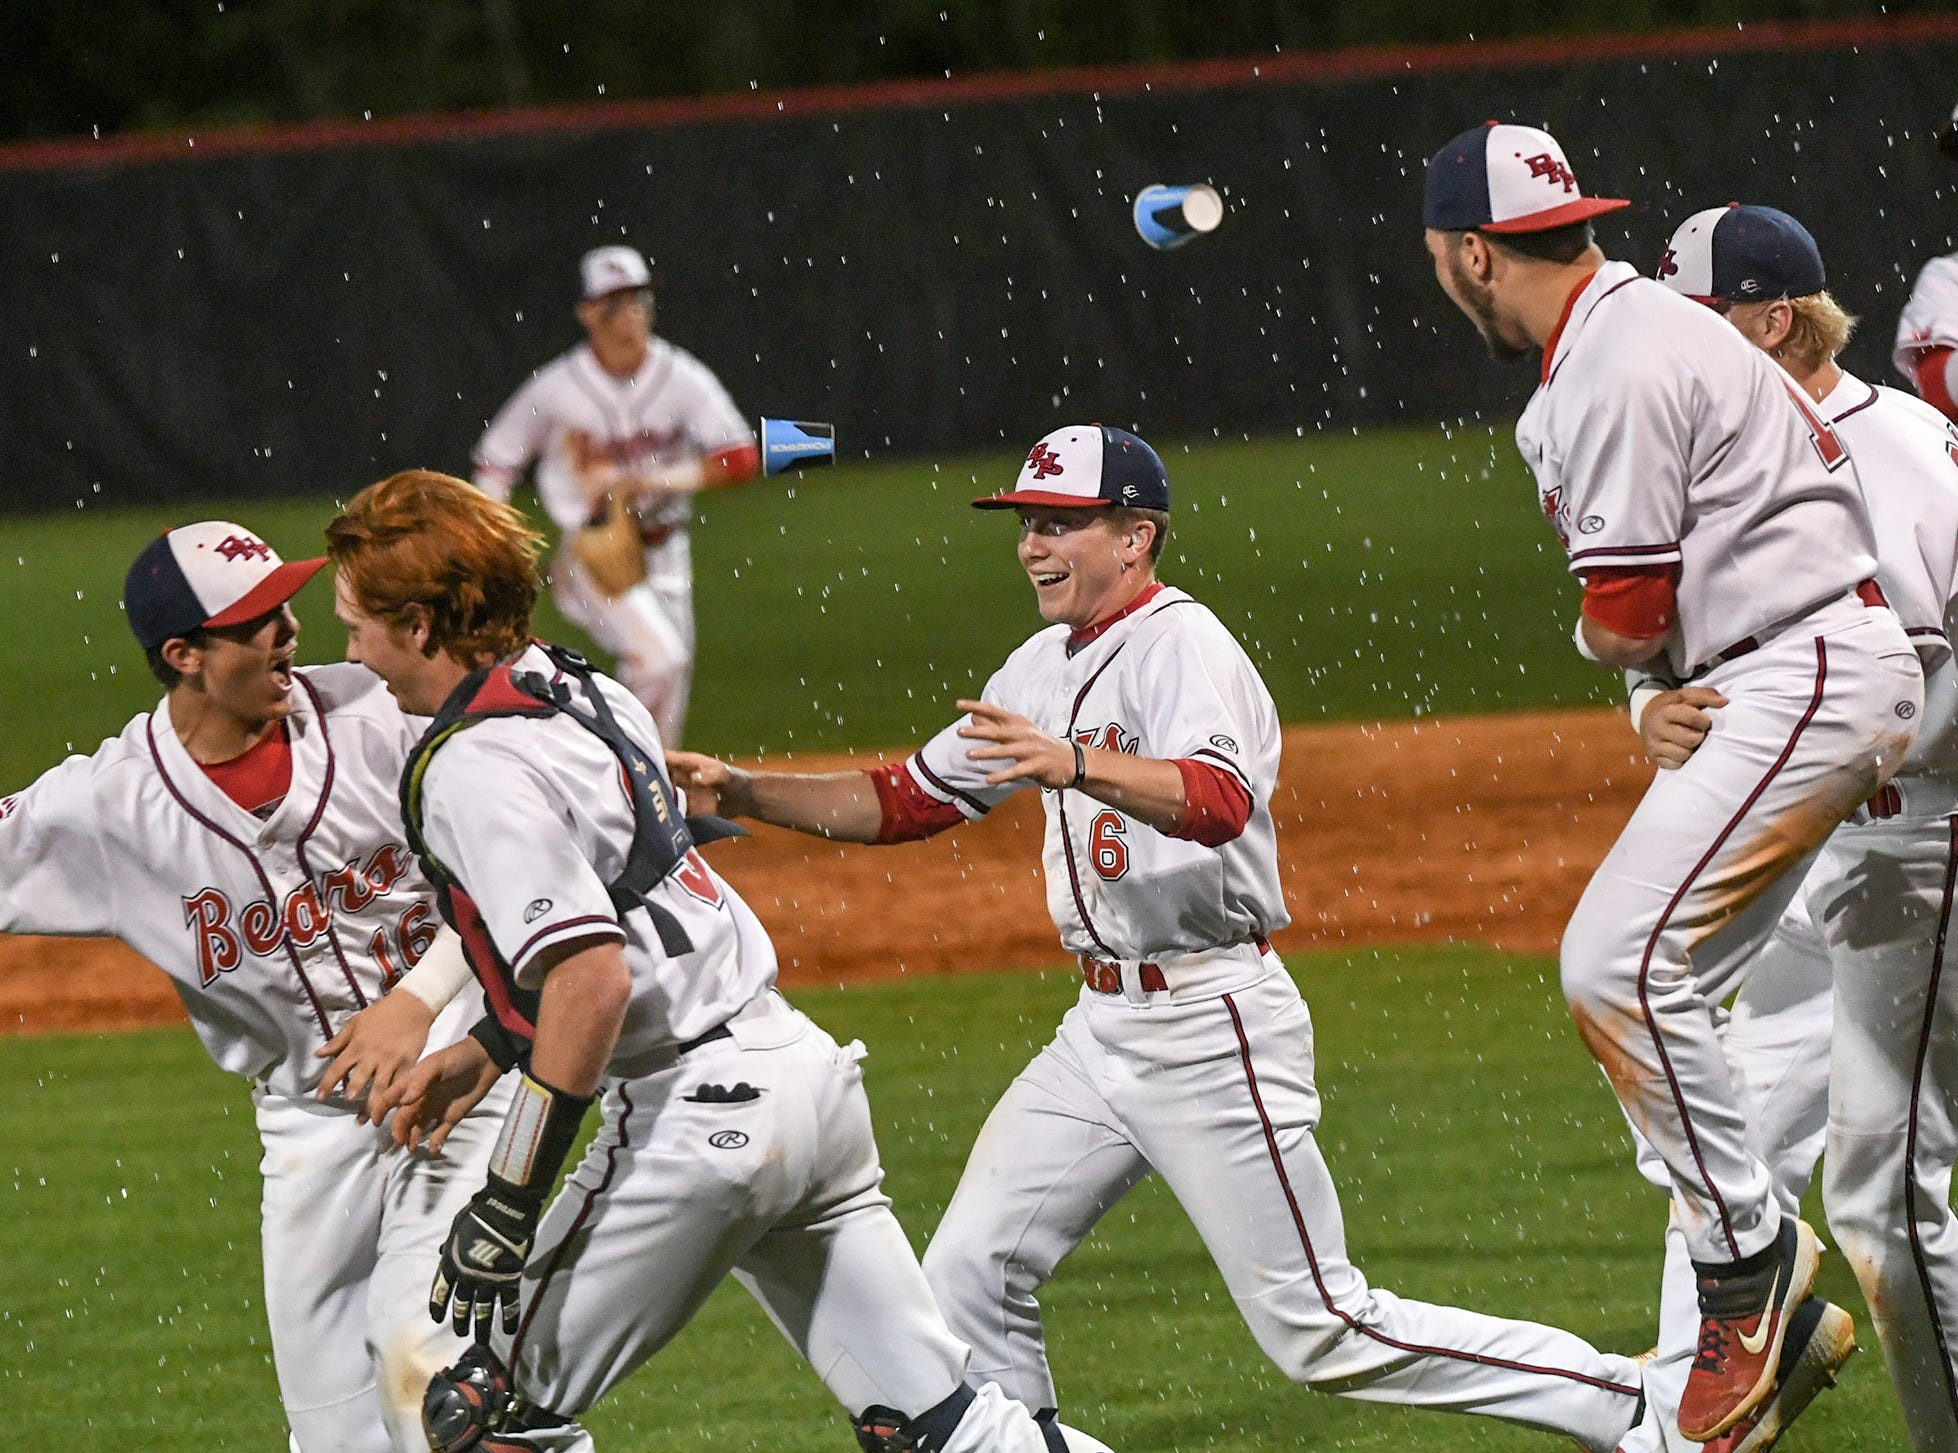 Belton-Honea Path players celebrate a Class AAAA Region 1 title with a 7-5 win over Wren in Honea Path Wednesday, April 10, 2019.